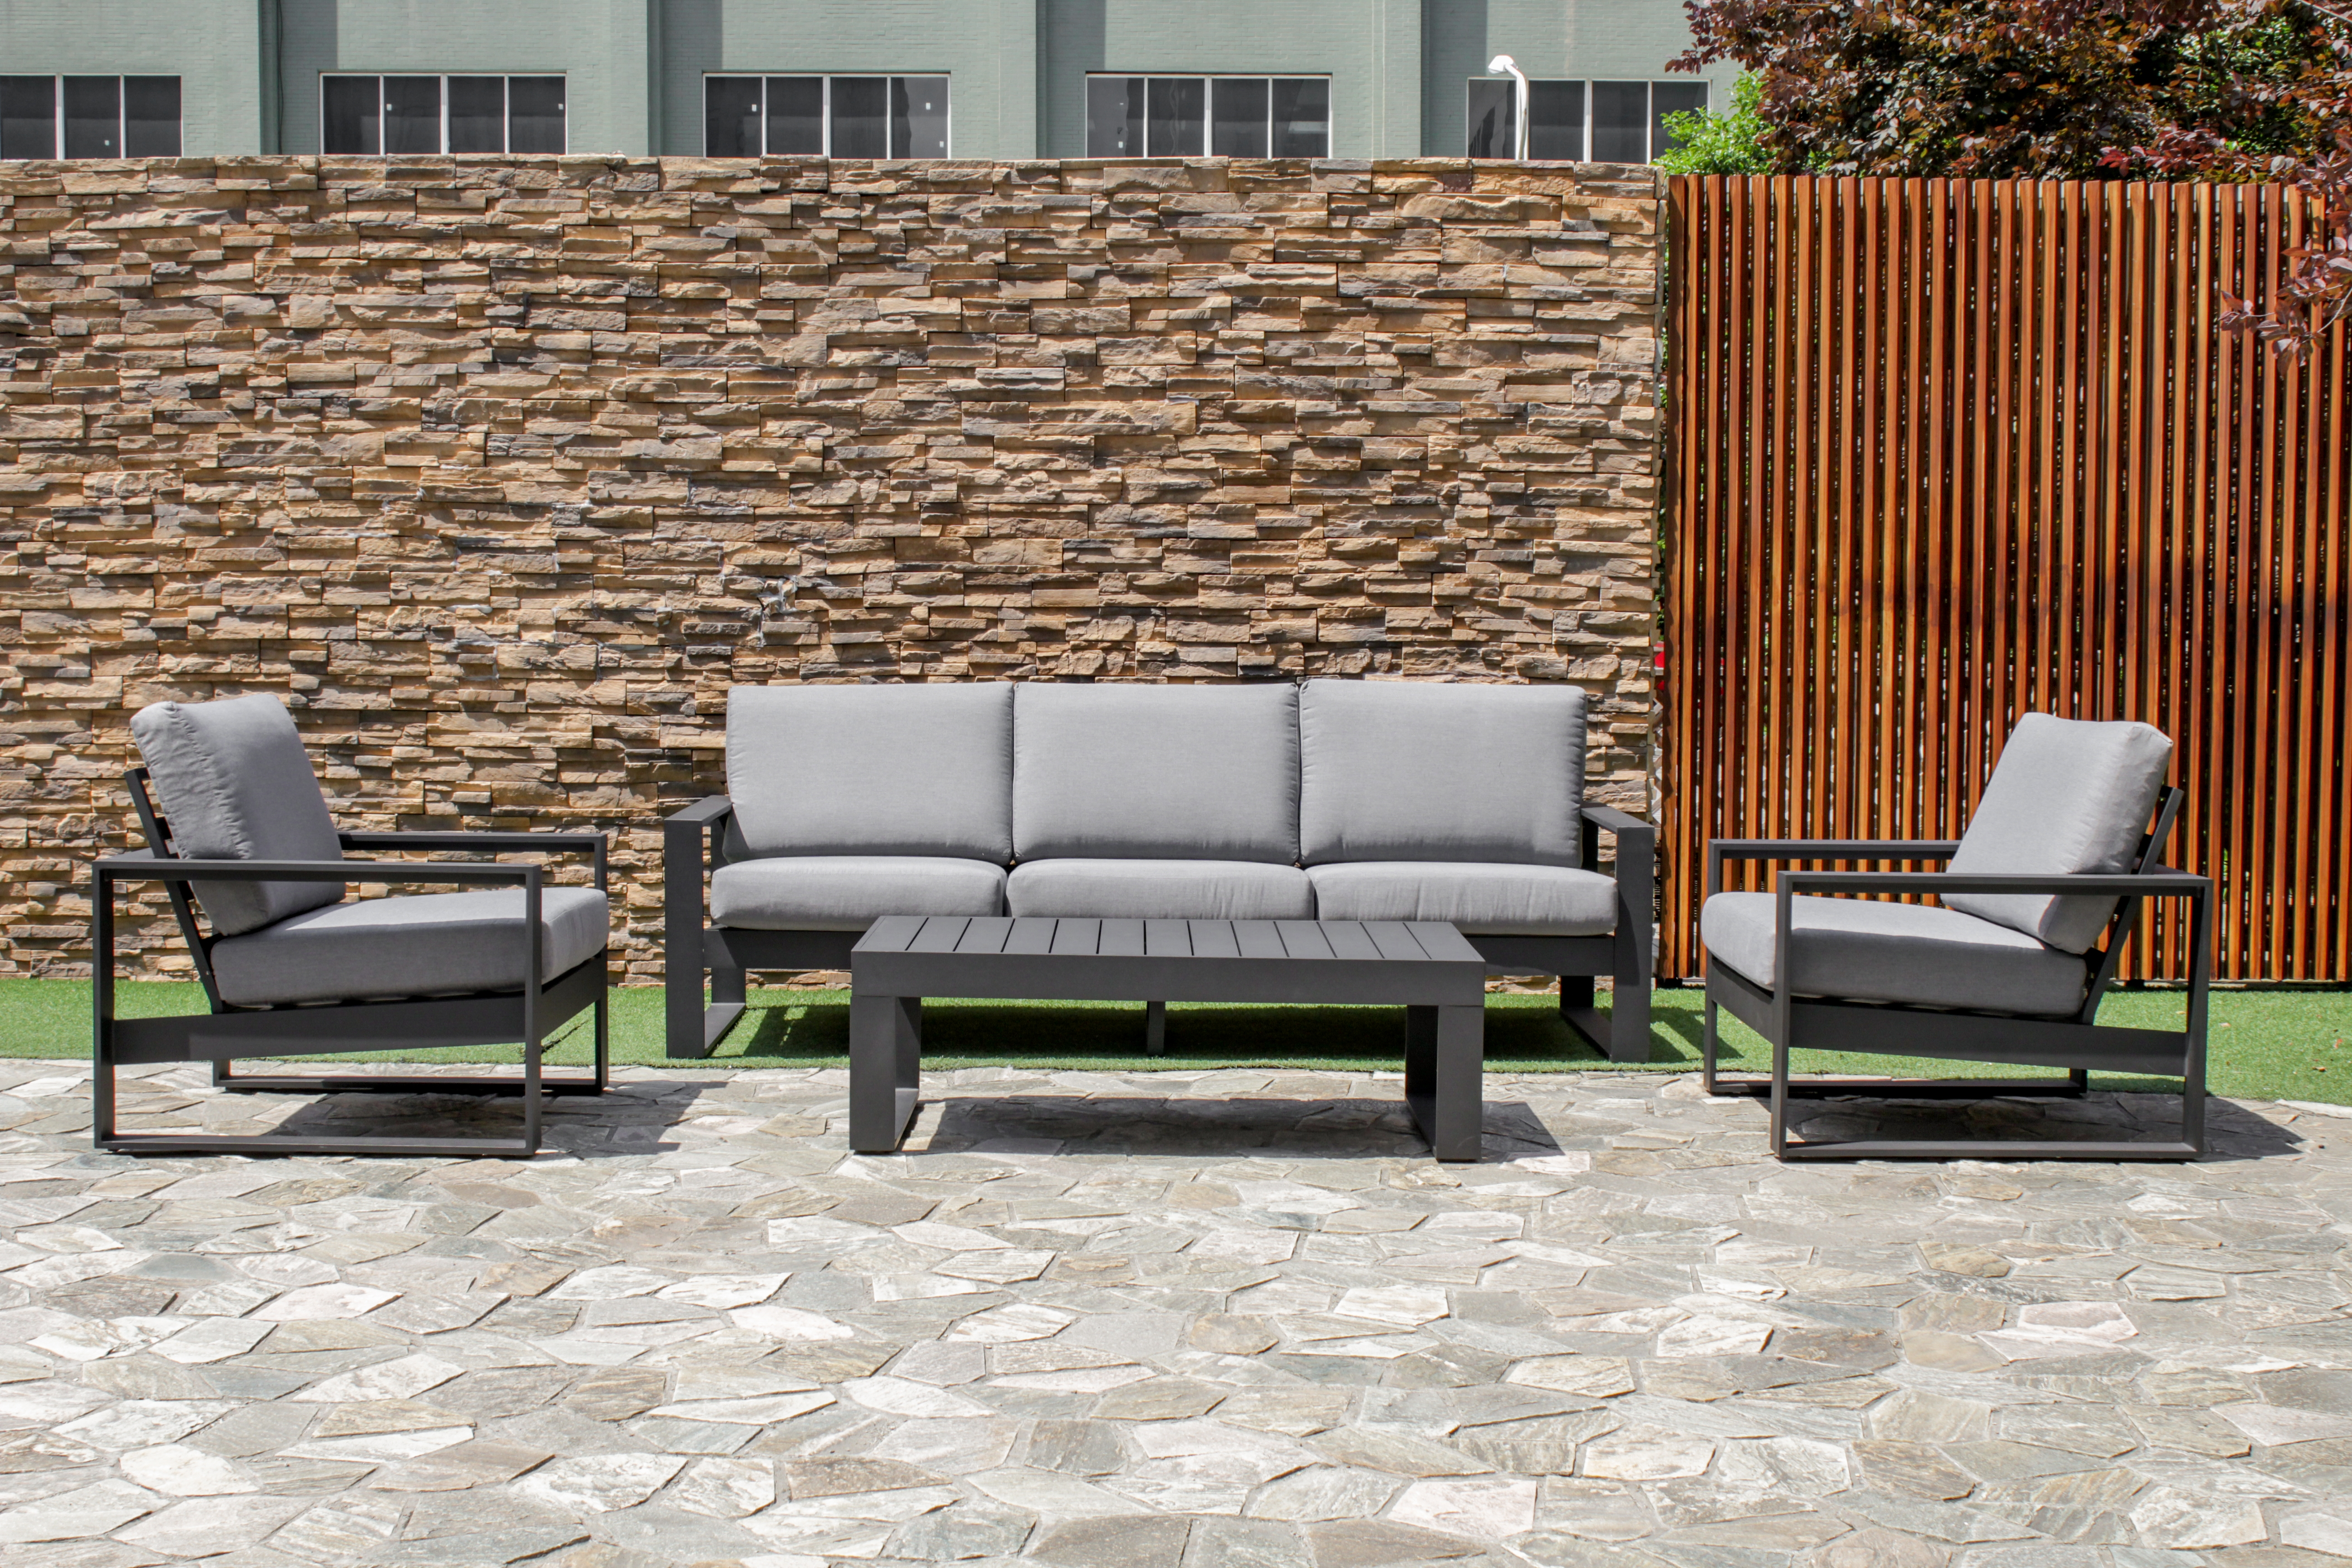 Maze Amalfi 3 seat Garden Furniture Set